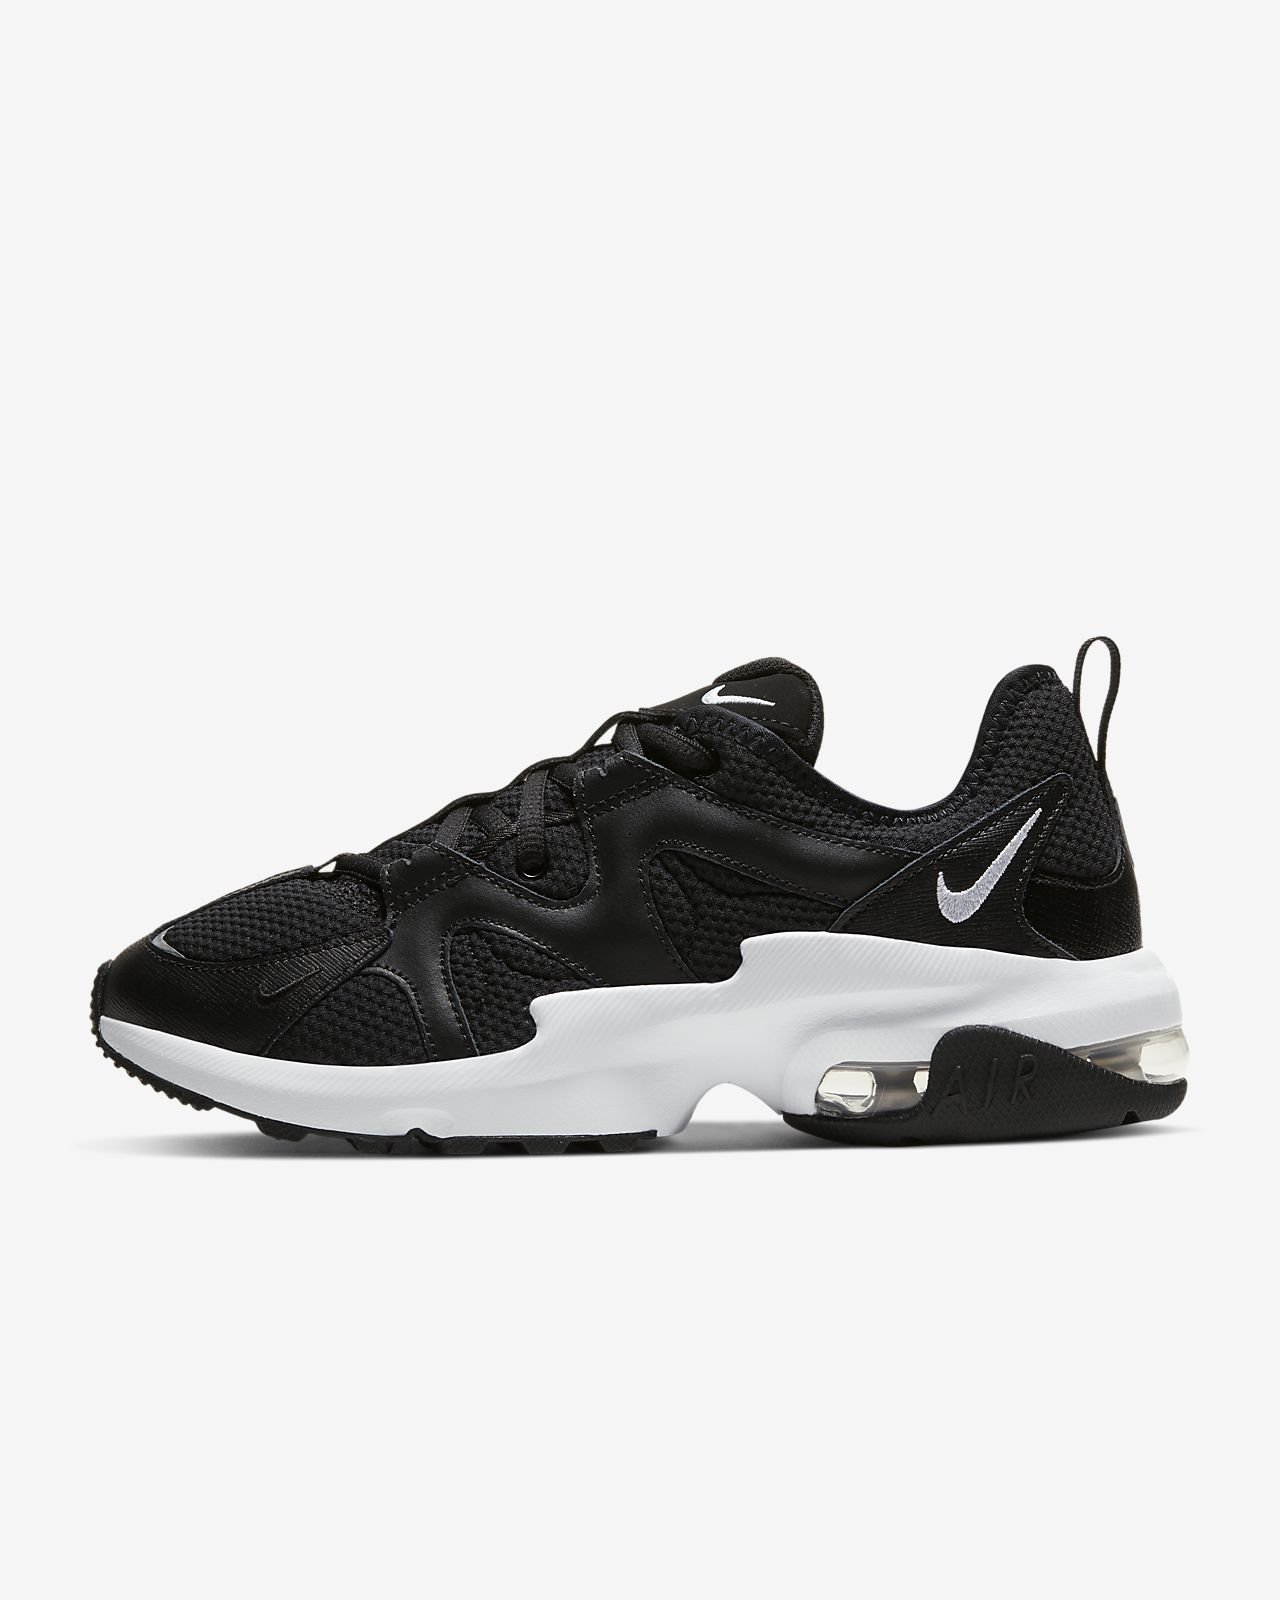 innovative design cost charm new arrival Chaussure Nike Air Max Graviton pour Femme. Nike FR